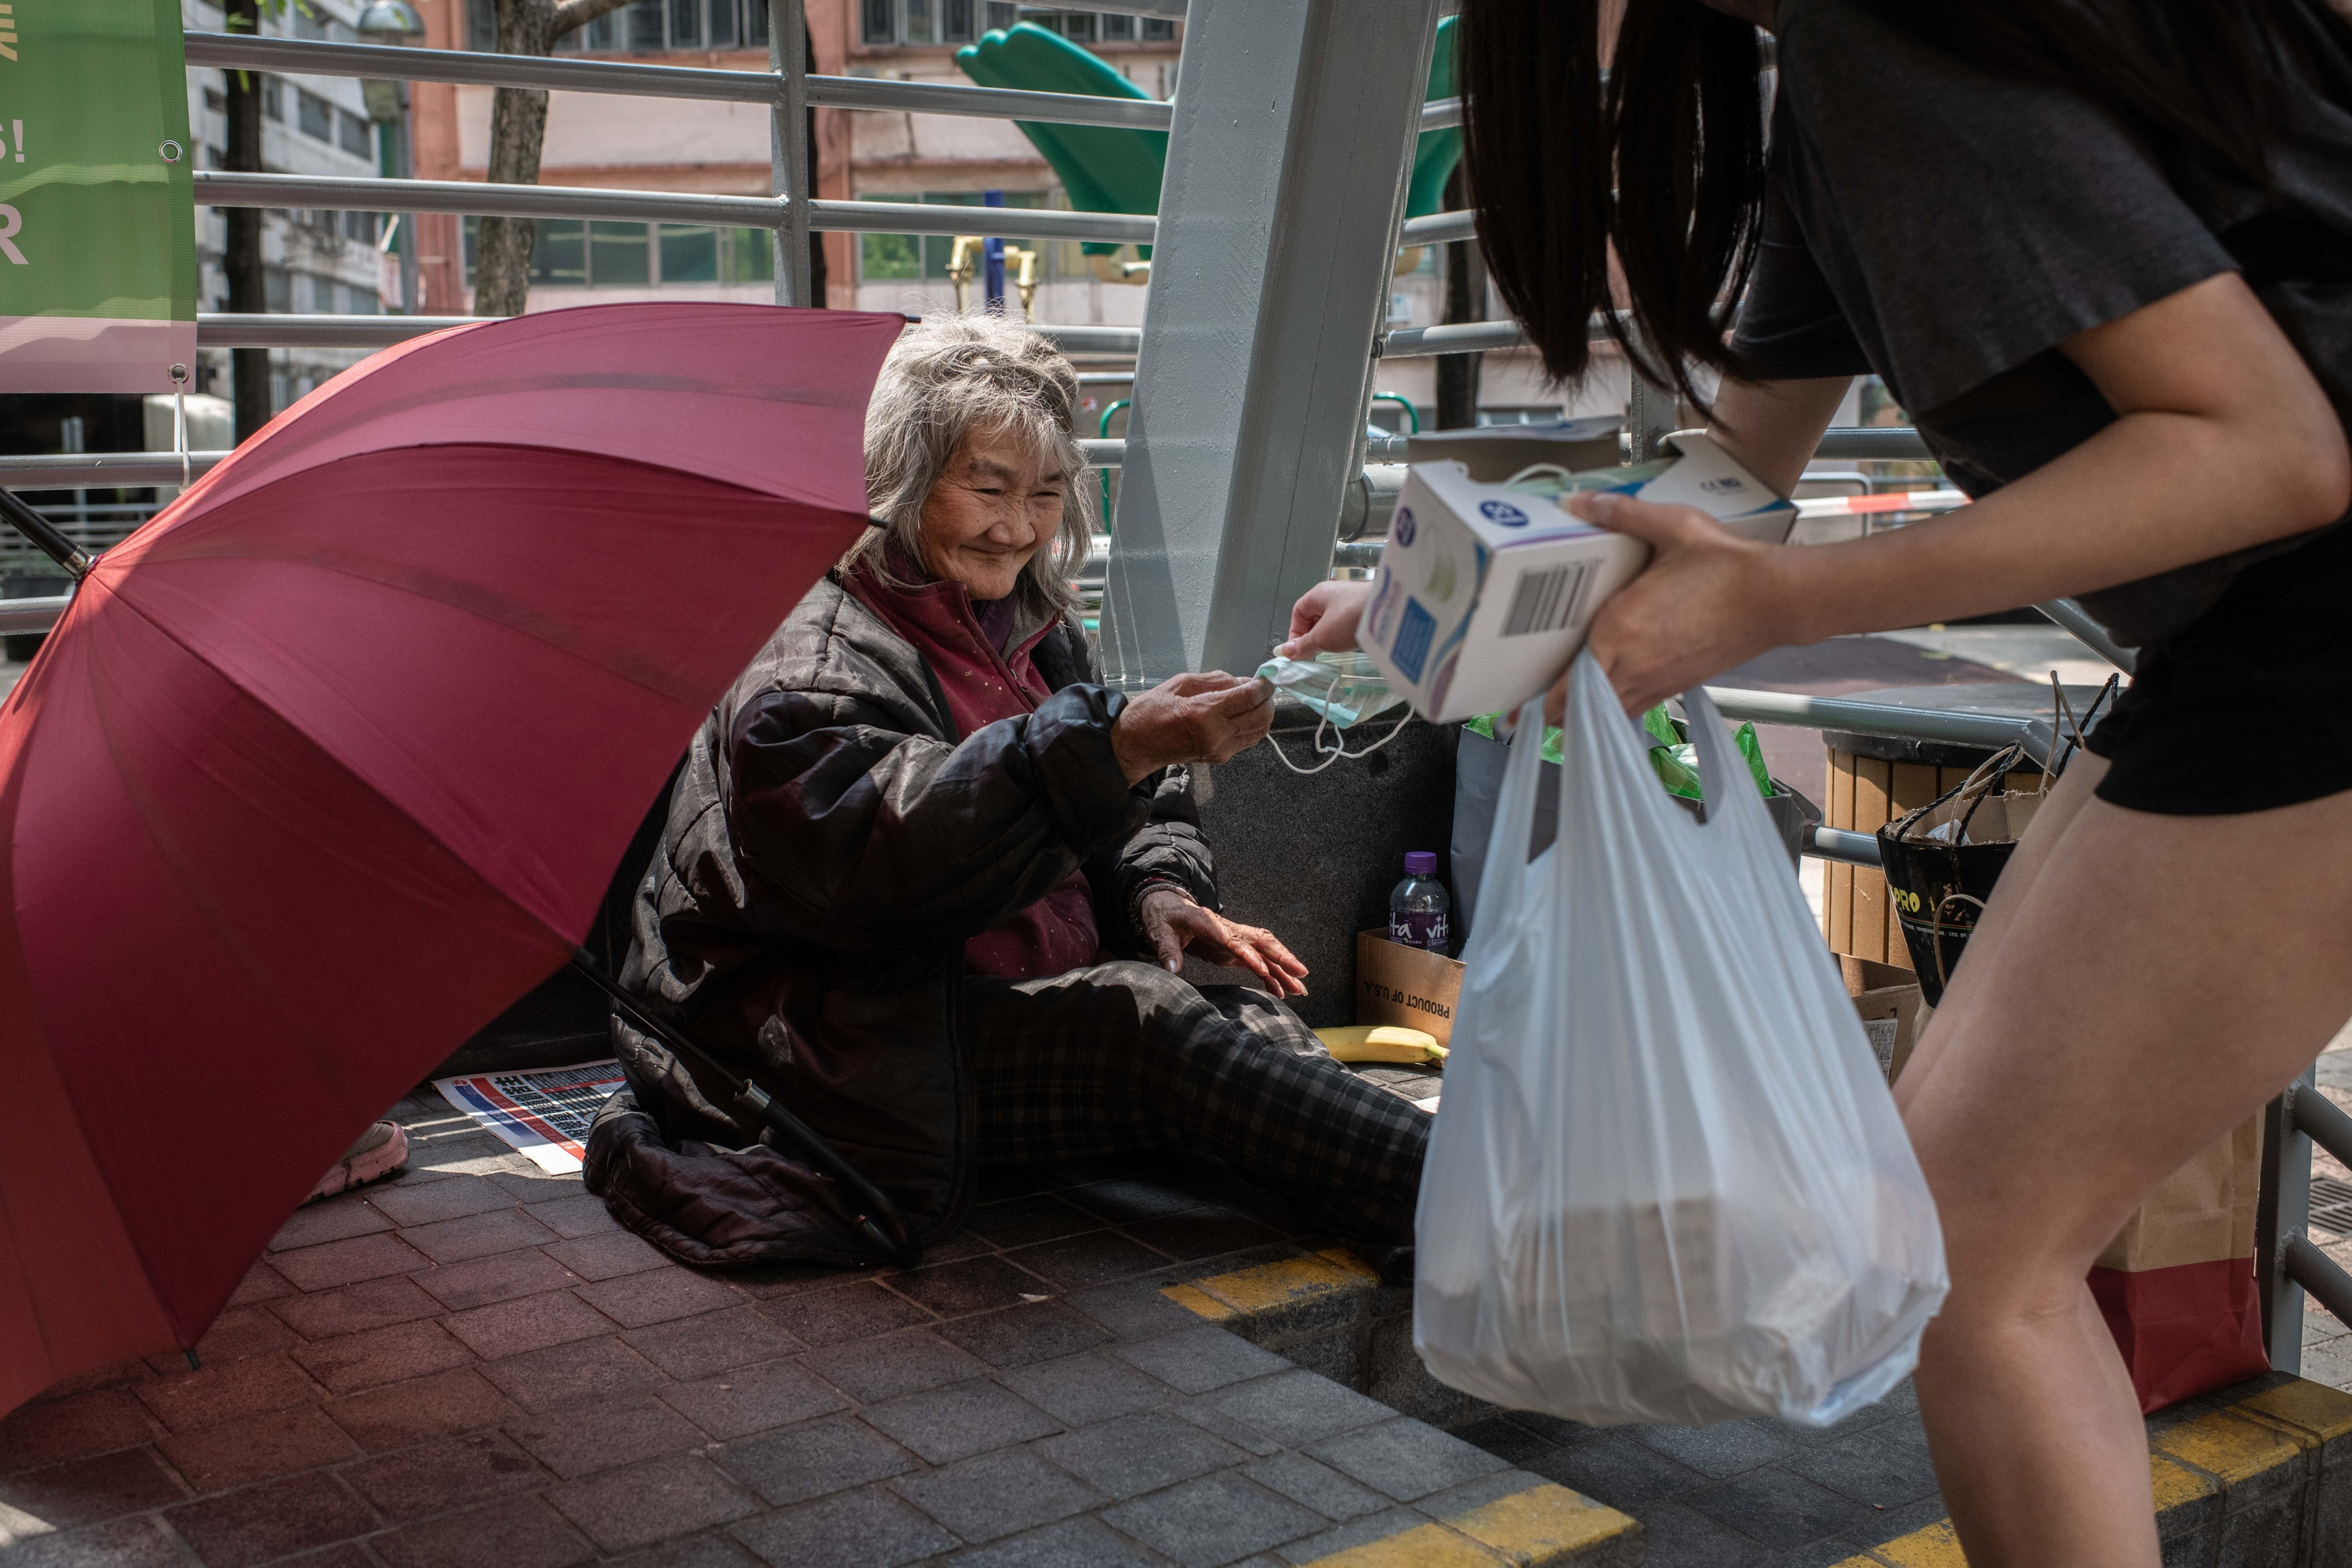 An elderly homeless woman receives a surgical mask from a volunteer as a preventive measure against the spread of Coronavirus. Photography by Ivan Abreu.